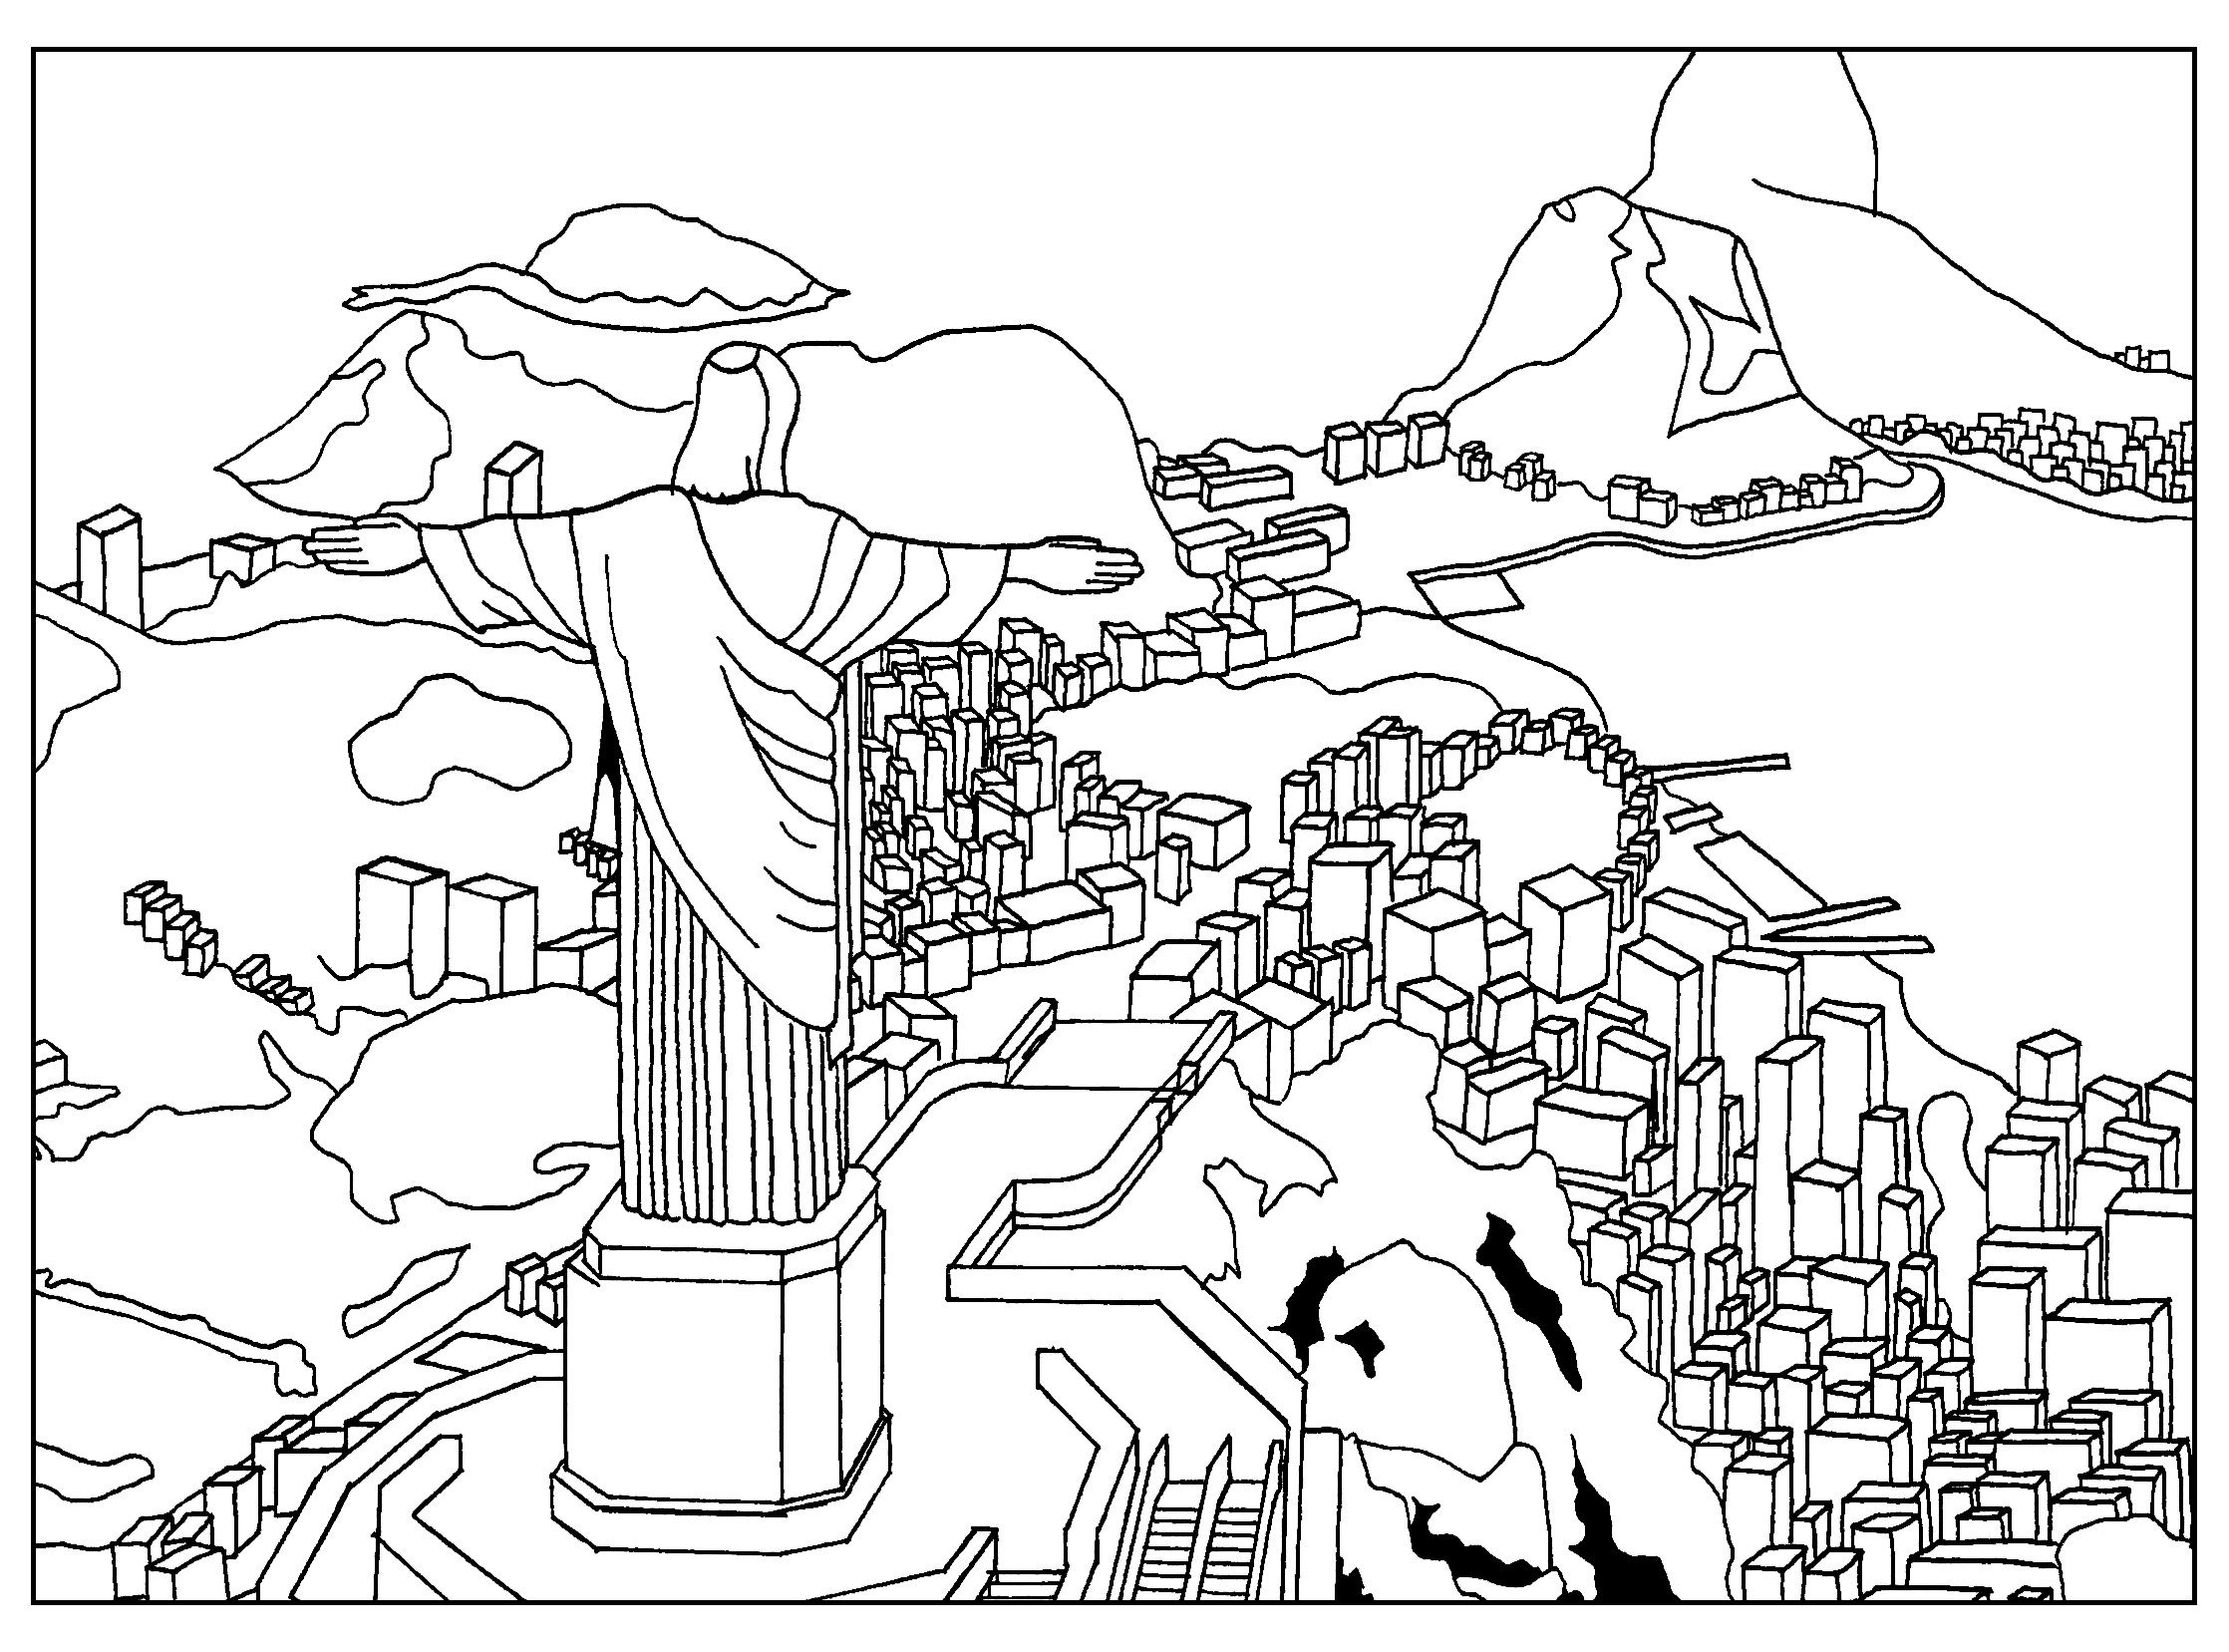 Coloring pages eyes - Free Coloring Page Coloring Adult Rio De Janeiro Through The